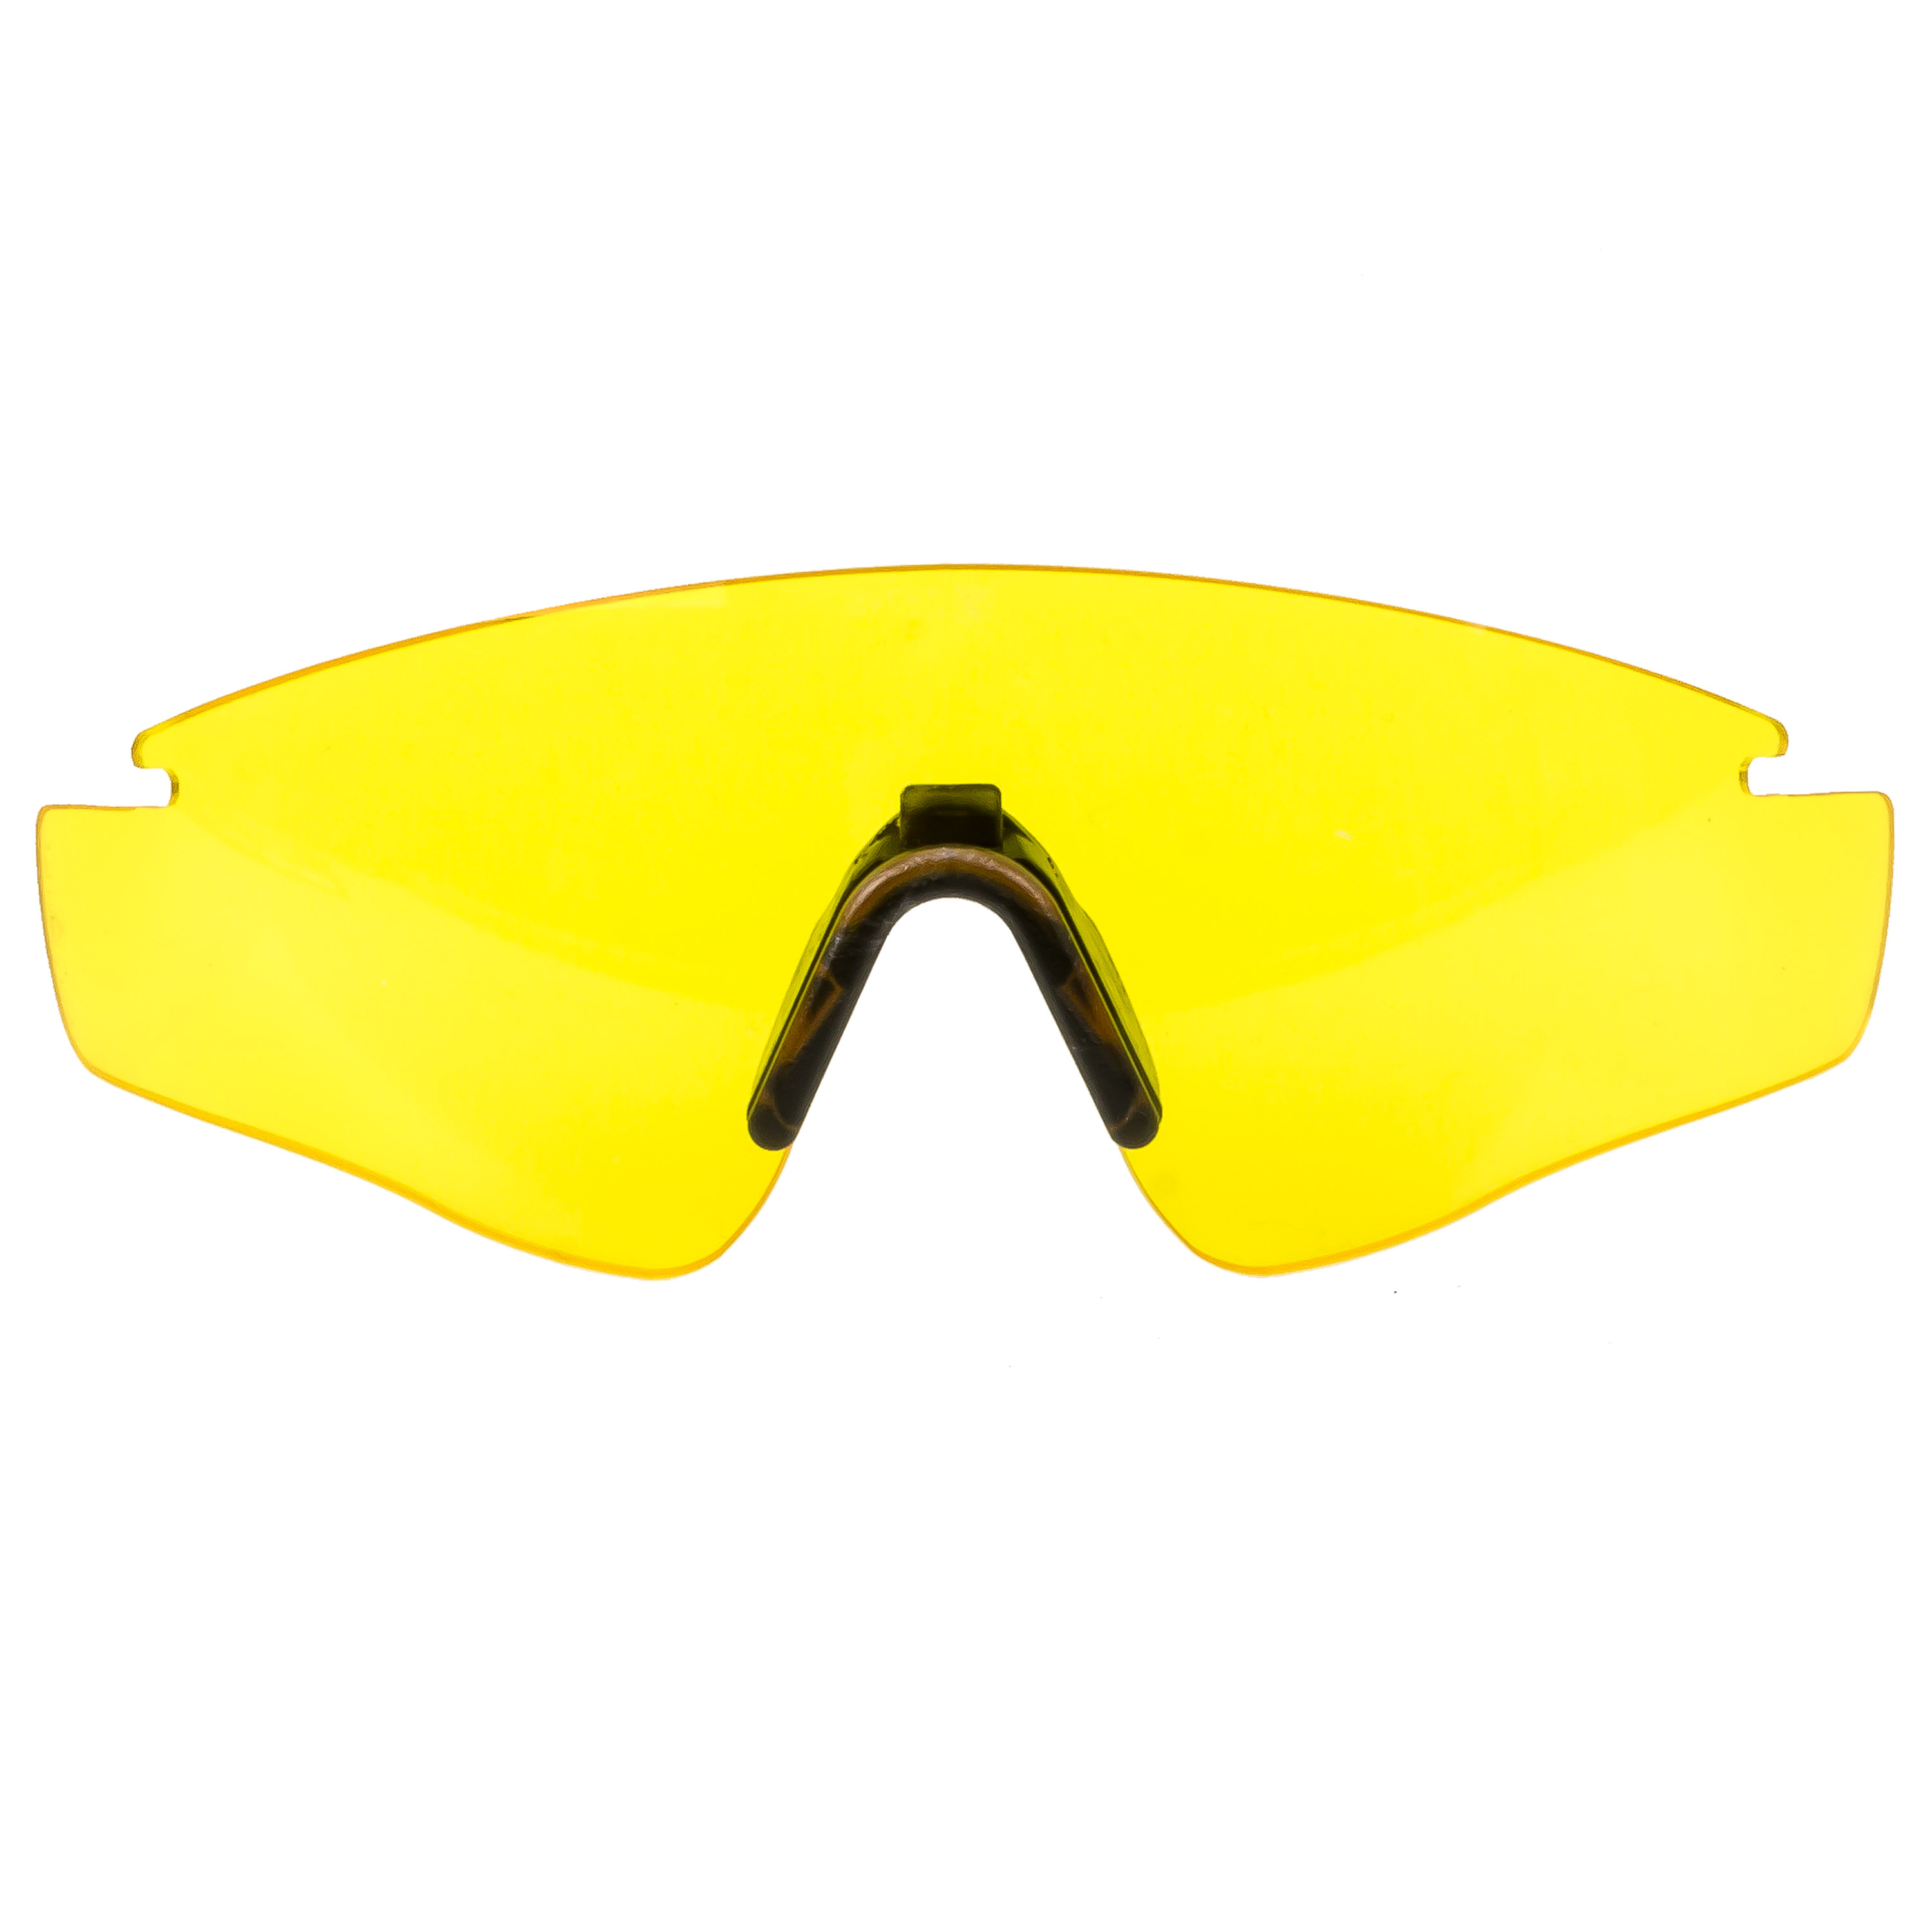 Replacement Lens Revision Sawfly Max-Wrap yellow regular